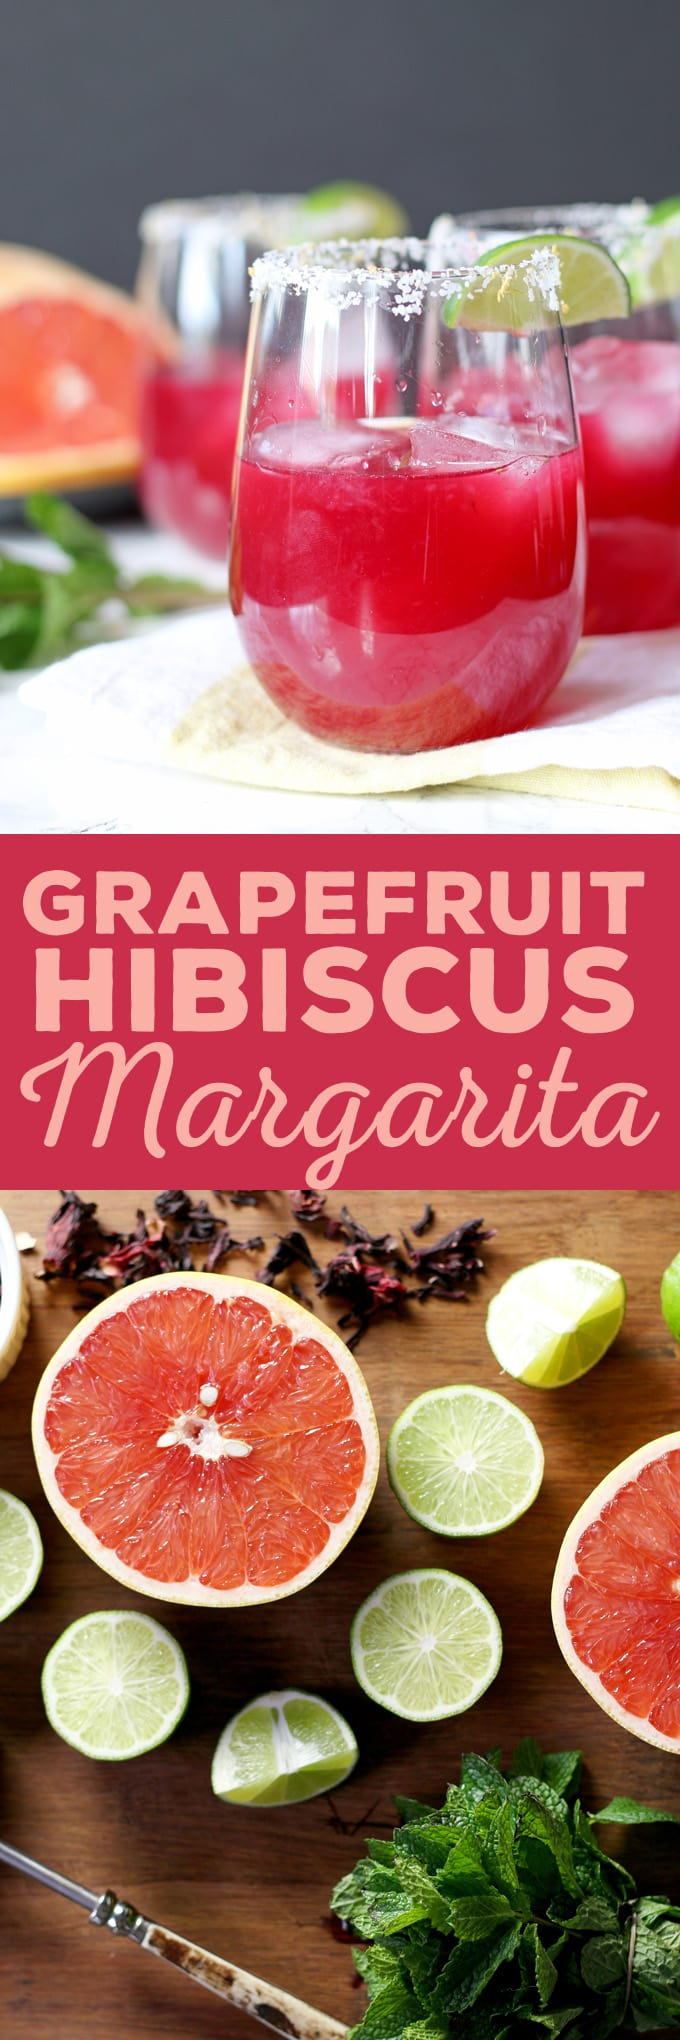 This grapefruit hibiscus margarita is the perfect cocktail recipe to make you think of summer! Fresh grapefruit and lime juice, homemade hibiscus simple syrup and a little muddled mint make this a fun and tropical cocktail! | honeyandbirch.com